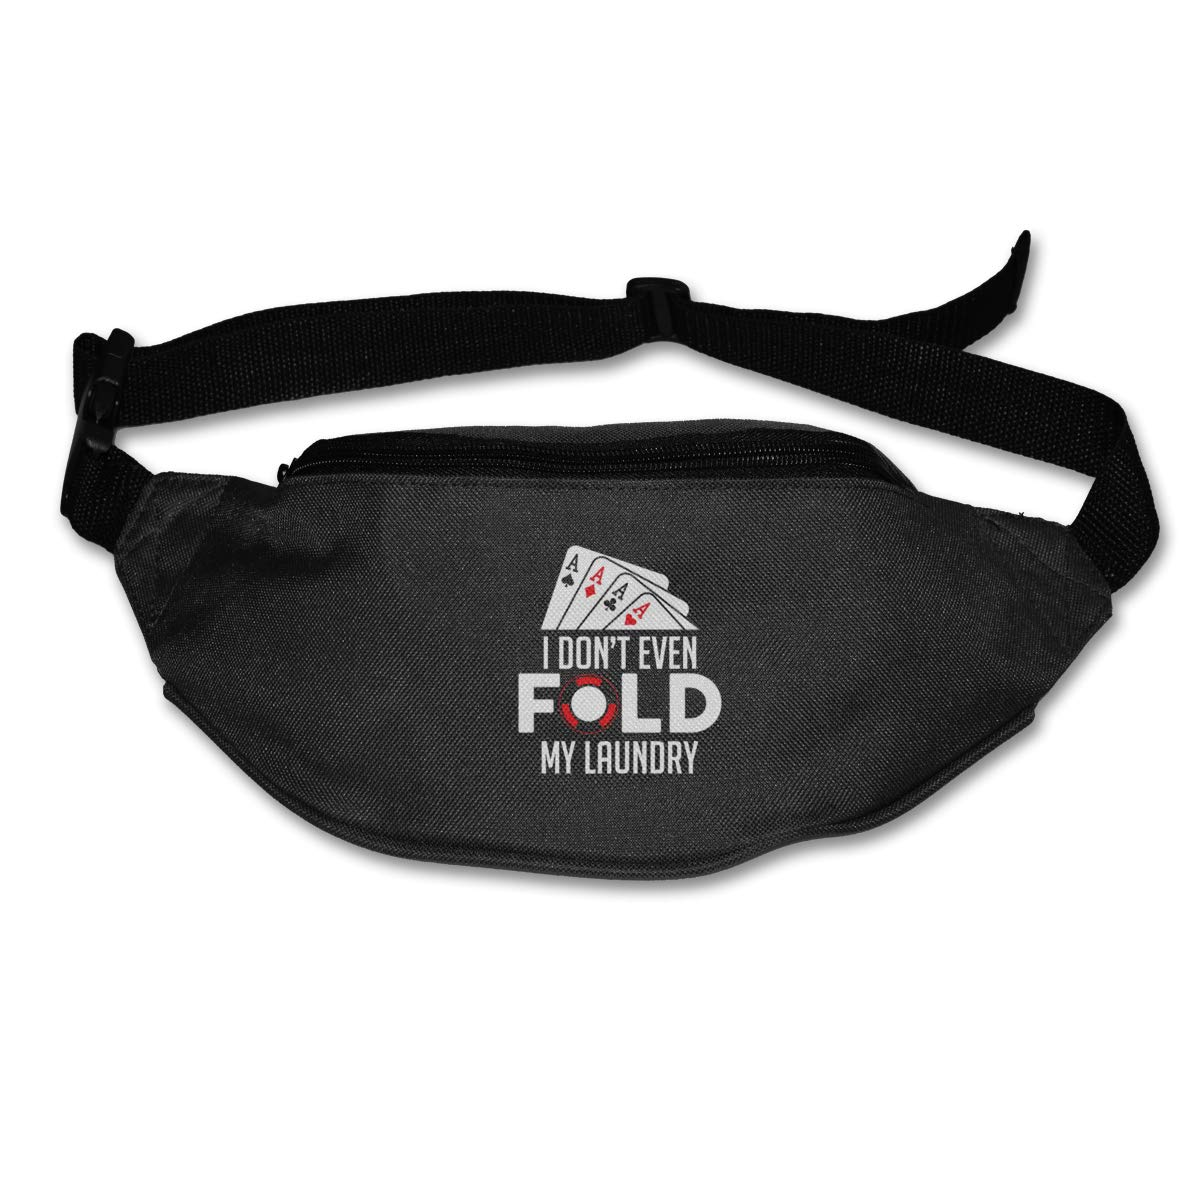 I Dont Even Fold My Laundry Sport Waist Packs Fanny Pack Adjustable For Run